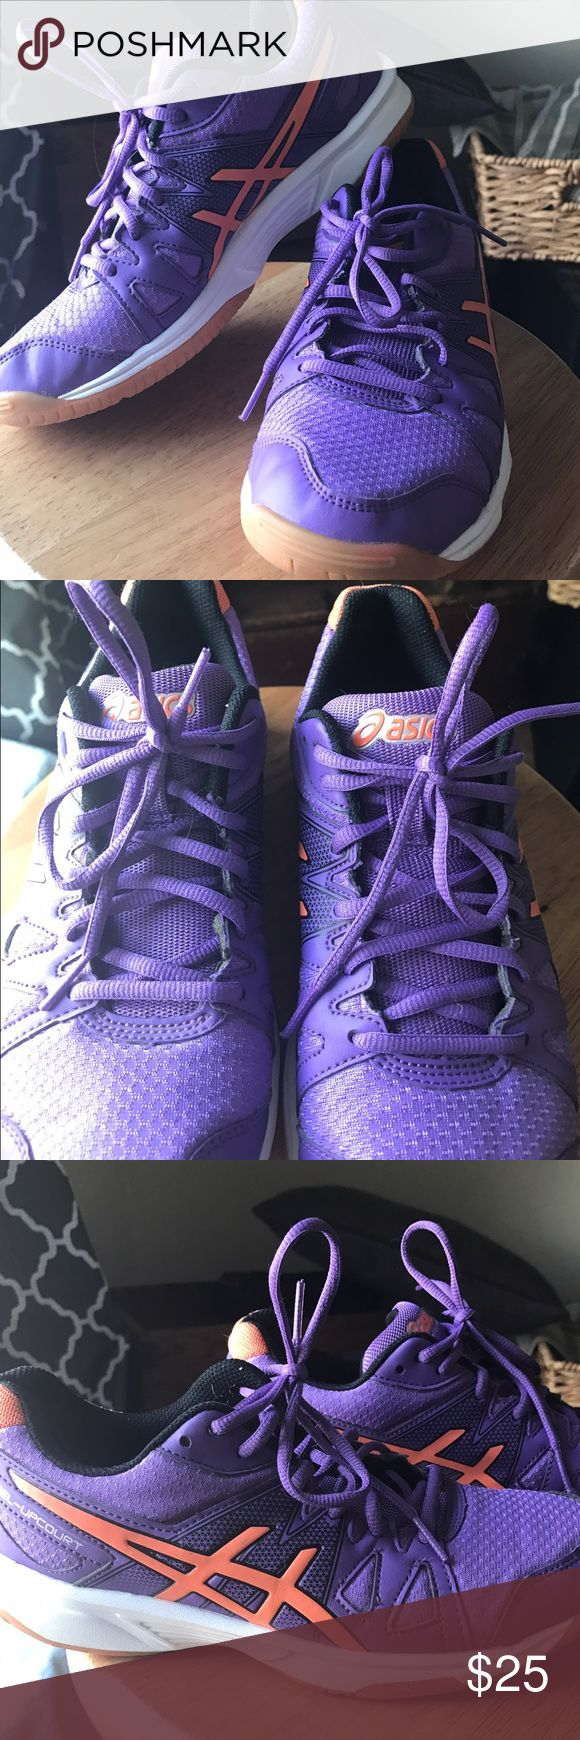 """Asics court shoes Almost new Asics """"GEL UP-COURT"""" shoes, basic gym shoes or court. Never worn outside, worn twice to work out in the living room, just don't fit me well. See last pic for slight orange color on the bottom from workout mat. Super cute bright purple! Asics Shoes Athletic Shoes"""